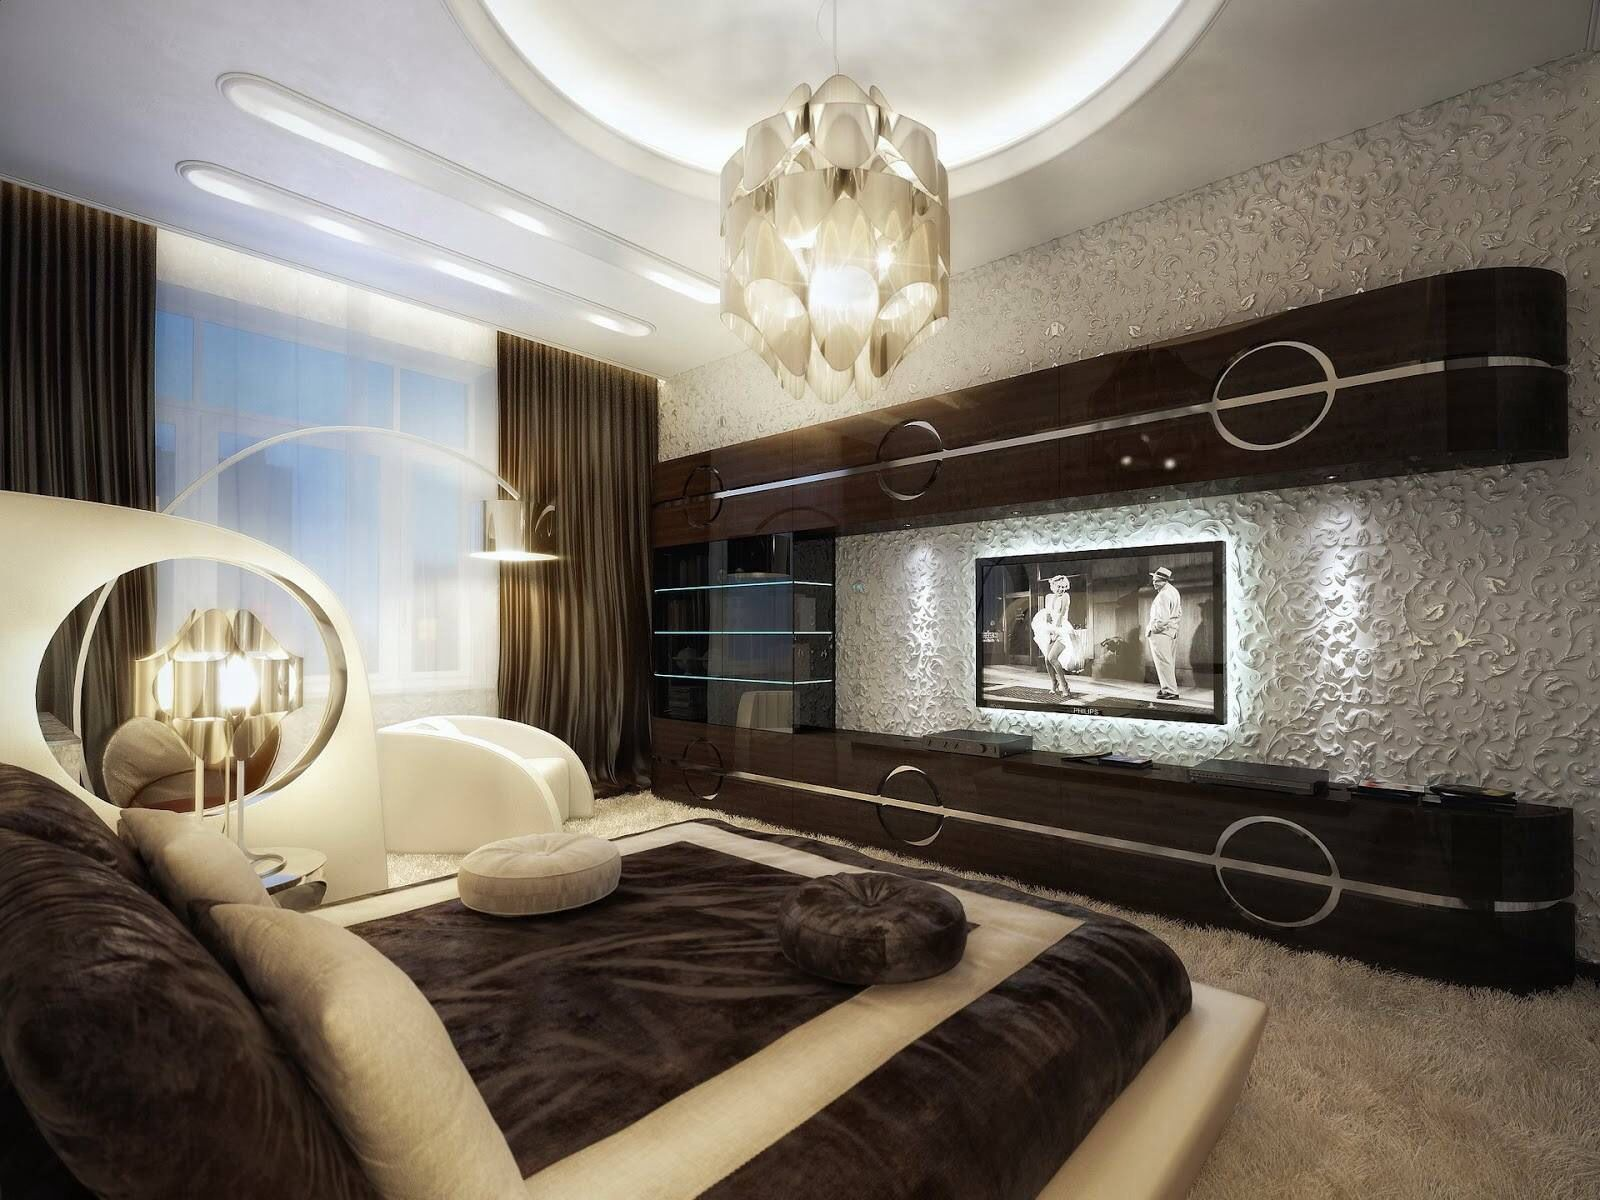 Luxurious Vintage Bedroom Designs With Some Luxurious